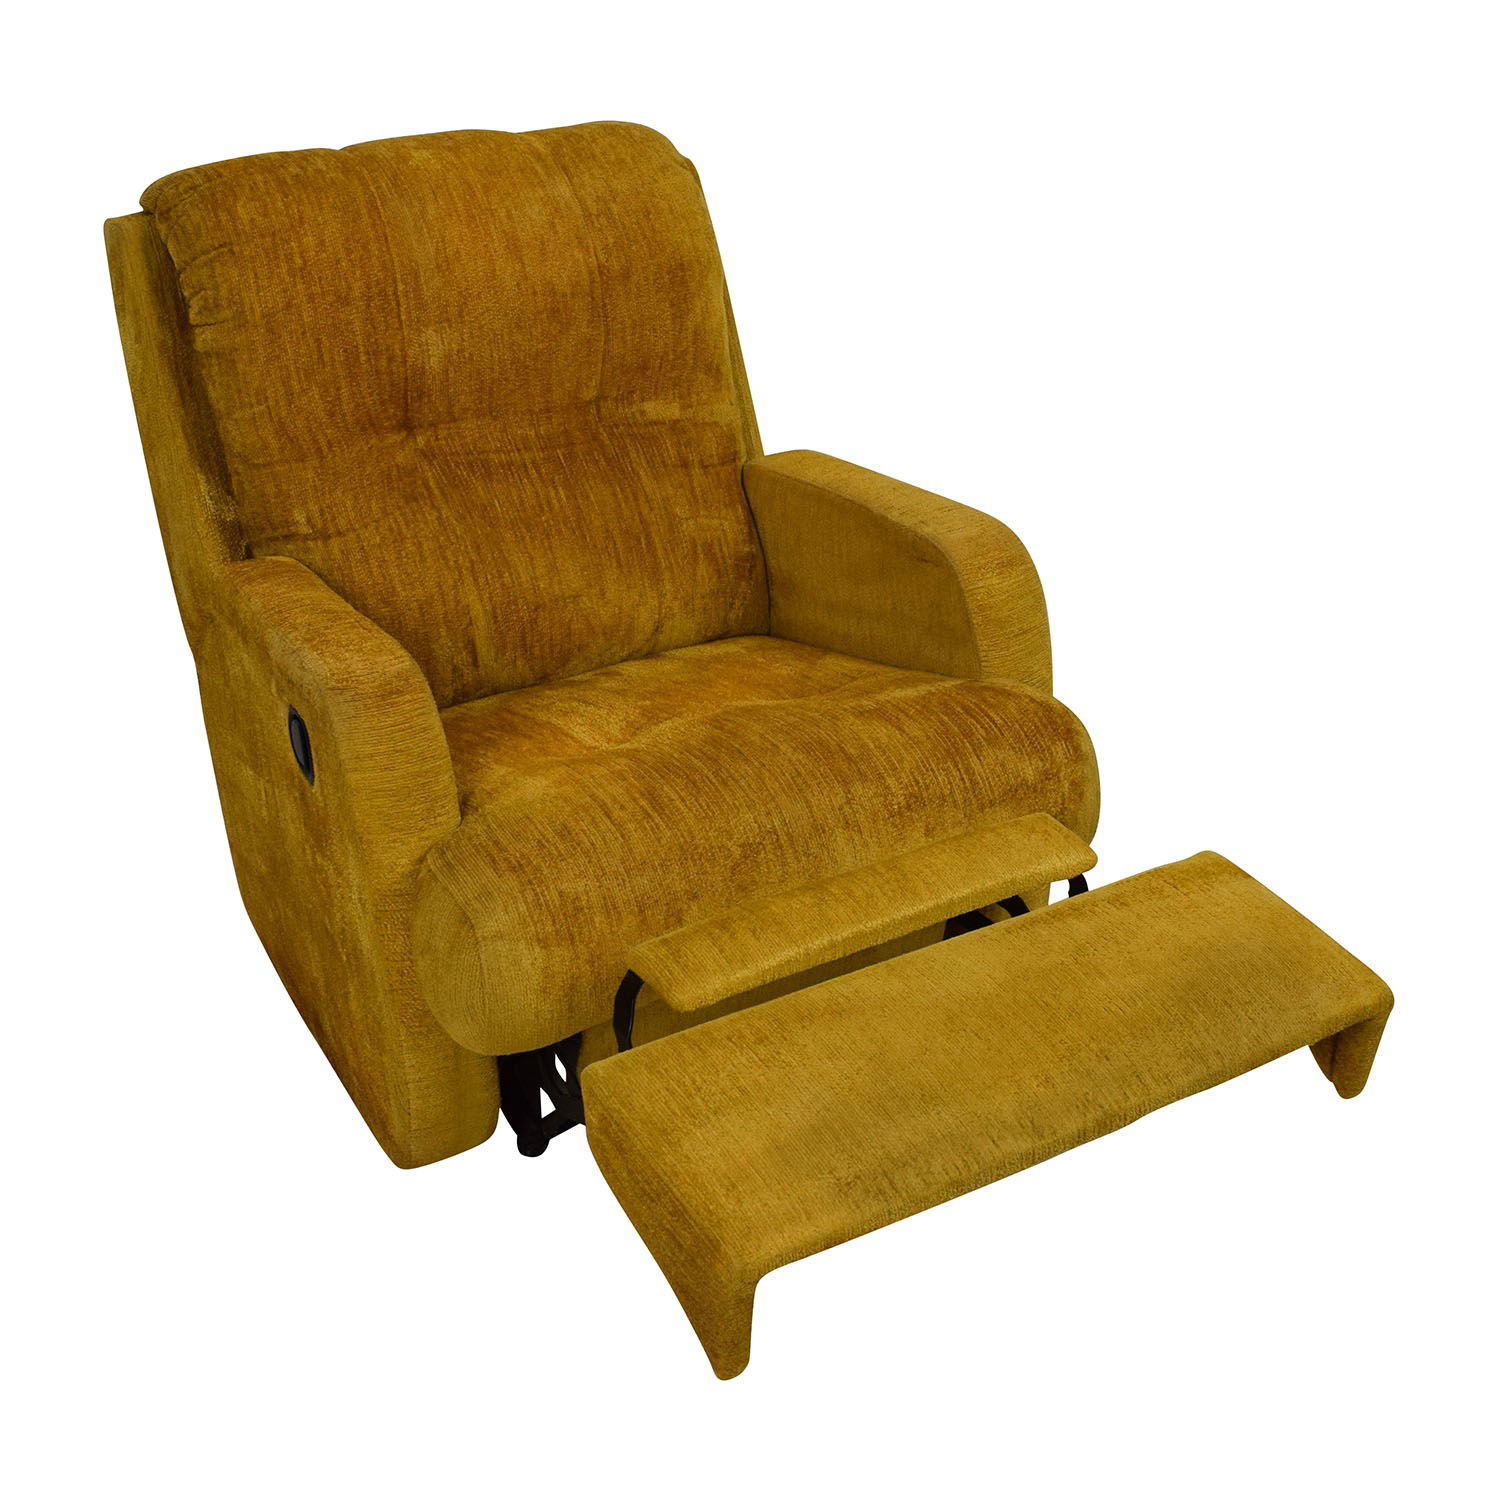 Delicieux ... Unknown Brand Yellow Recliner Chair On Sale ...